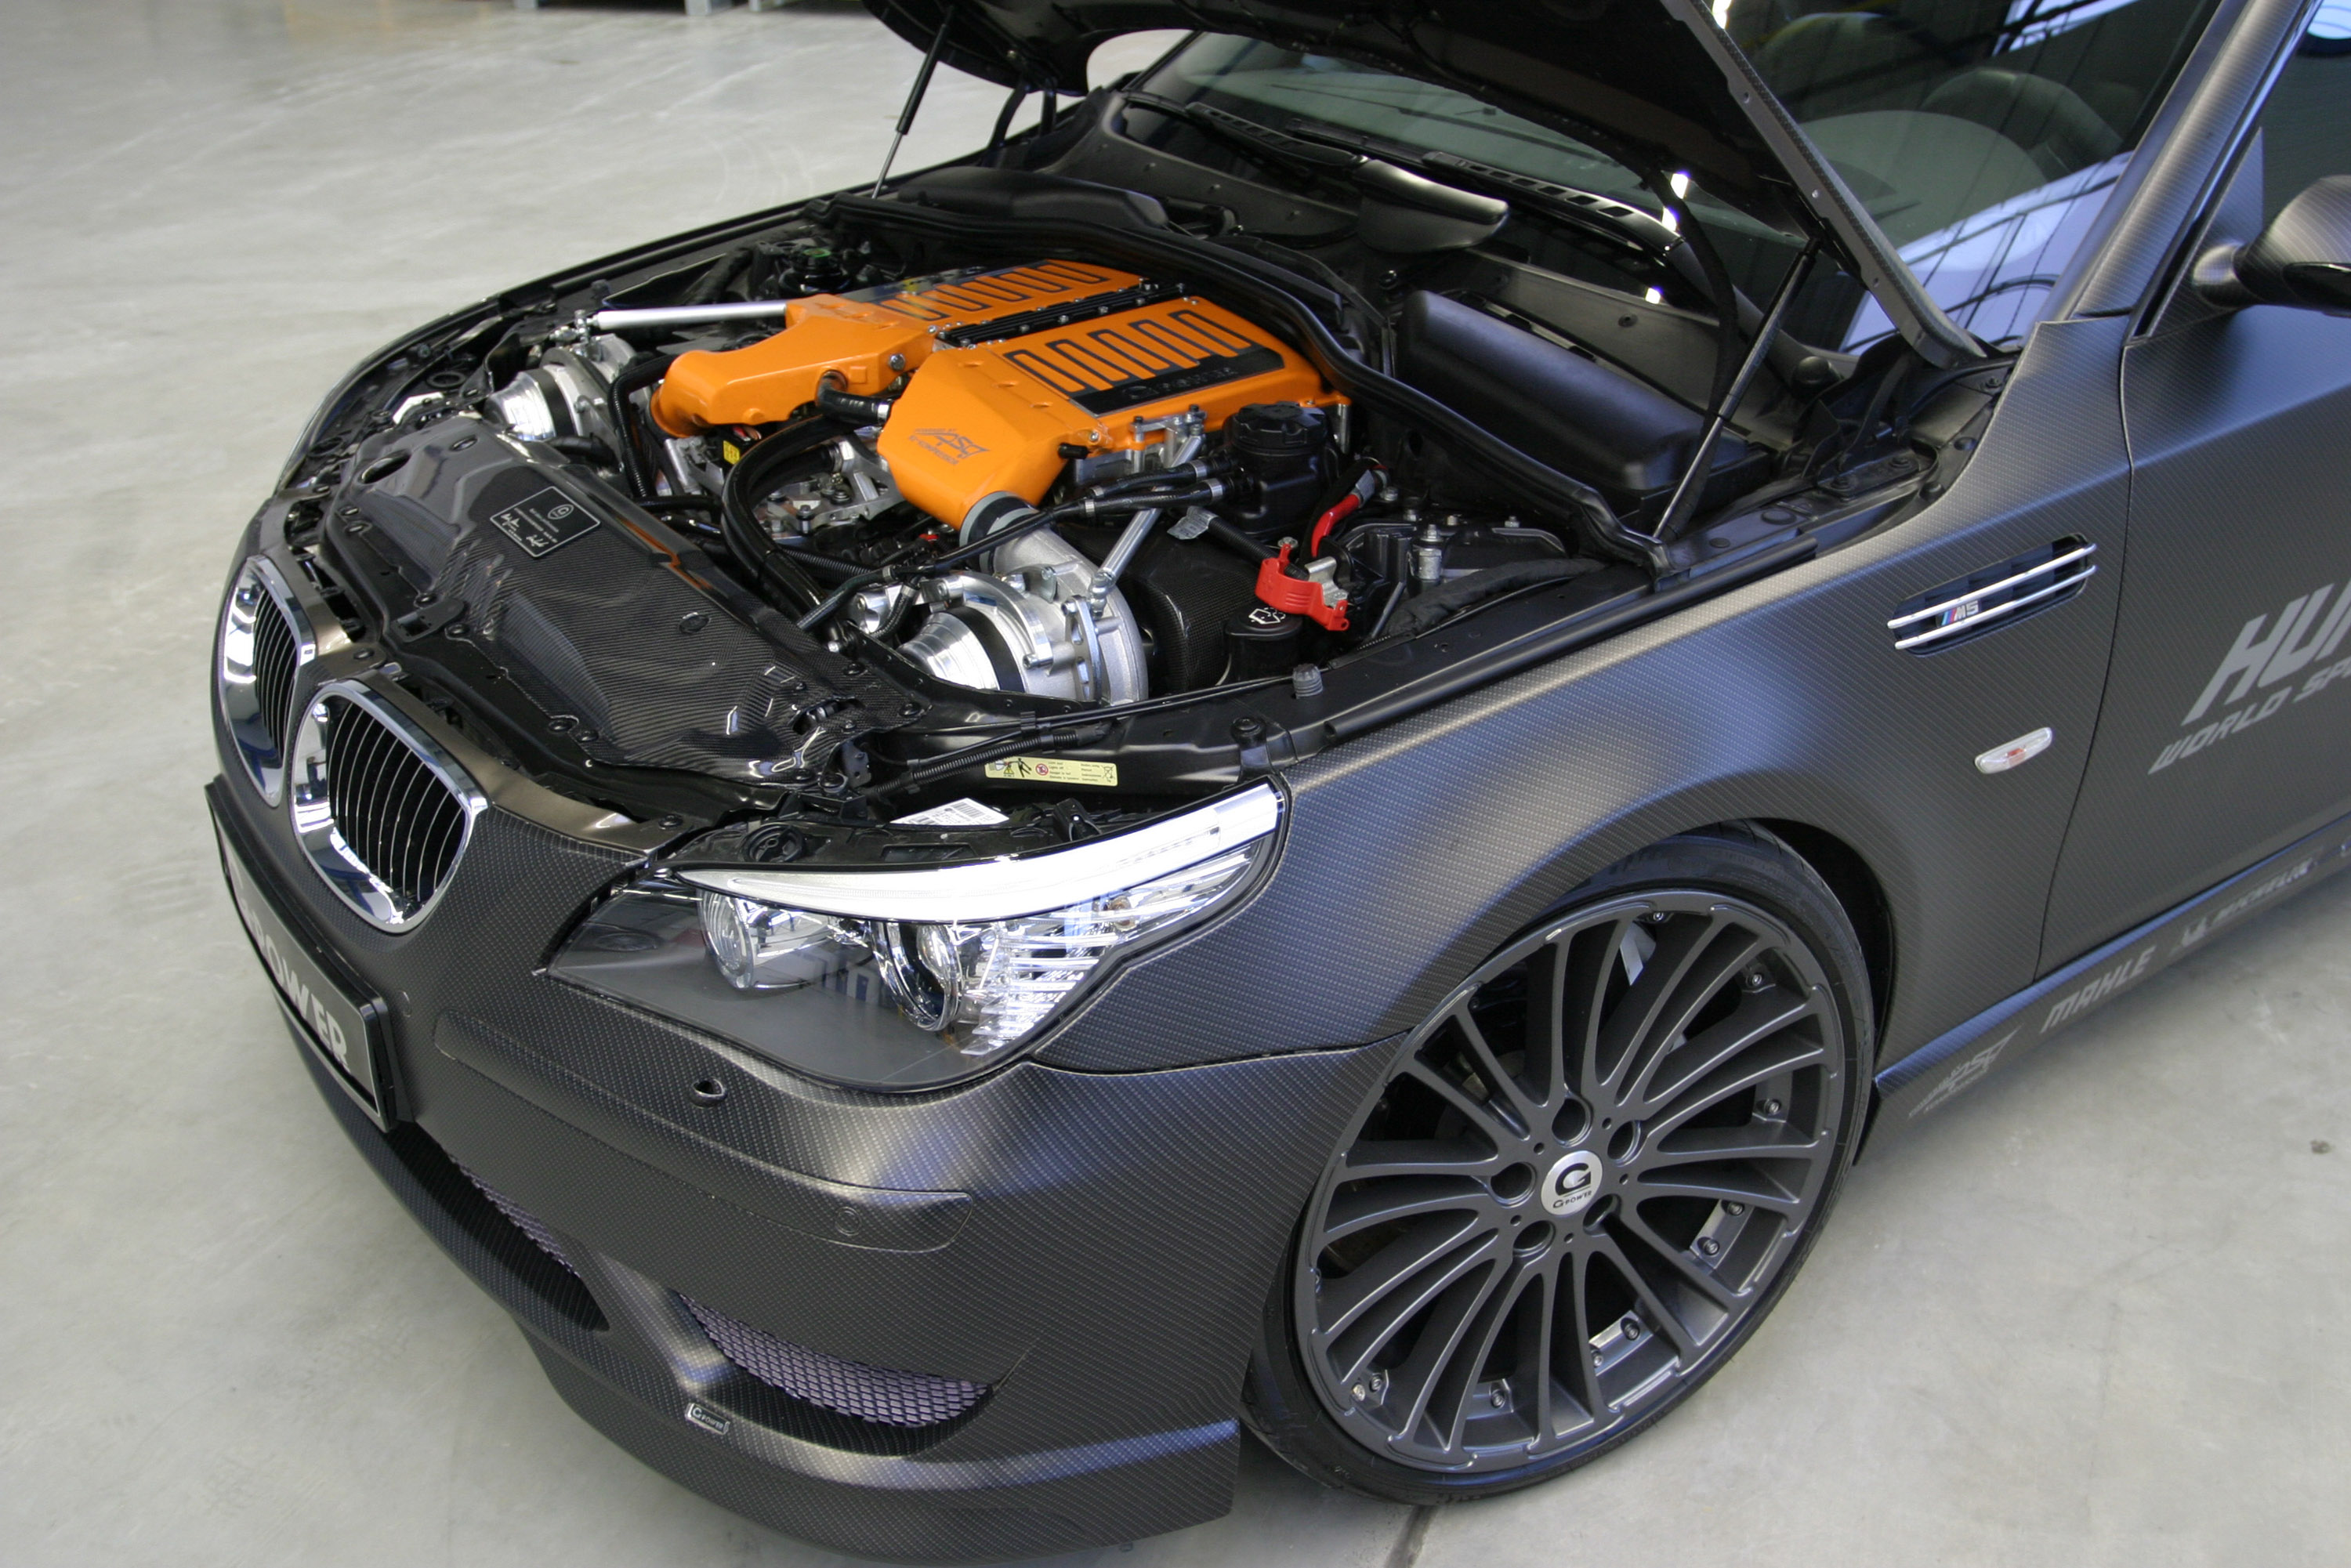 g power bmw m5 hurricane rs hd video top speed 357 km h. Black Bedroom Furniture Sets. Home Design Ideas